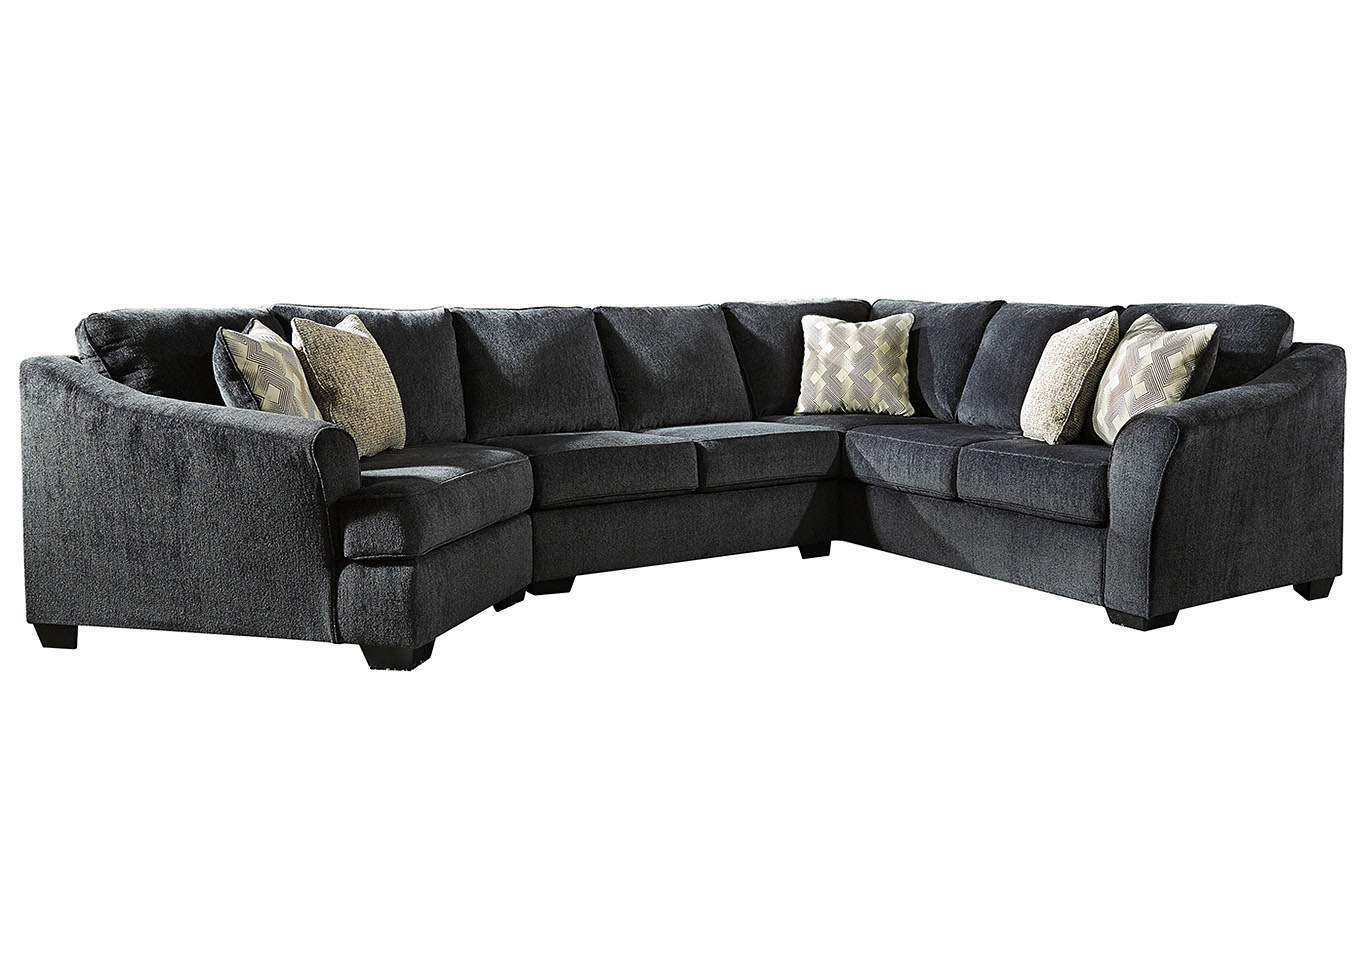 Eltmann Slate 3-Piece Sectional with Cuddler,Signature Design By Ashley